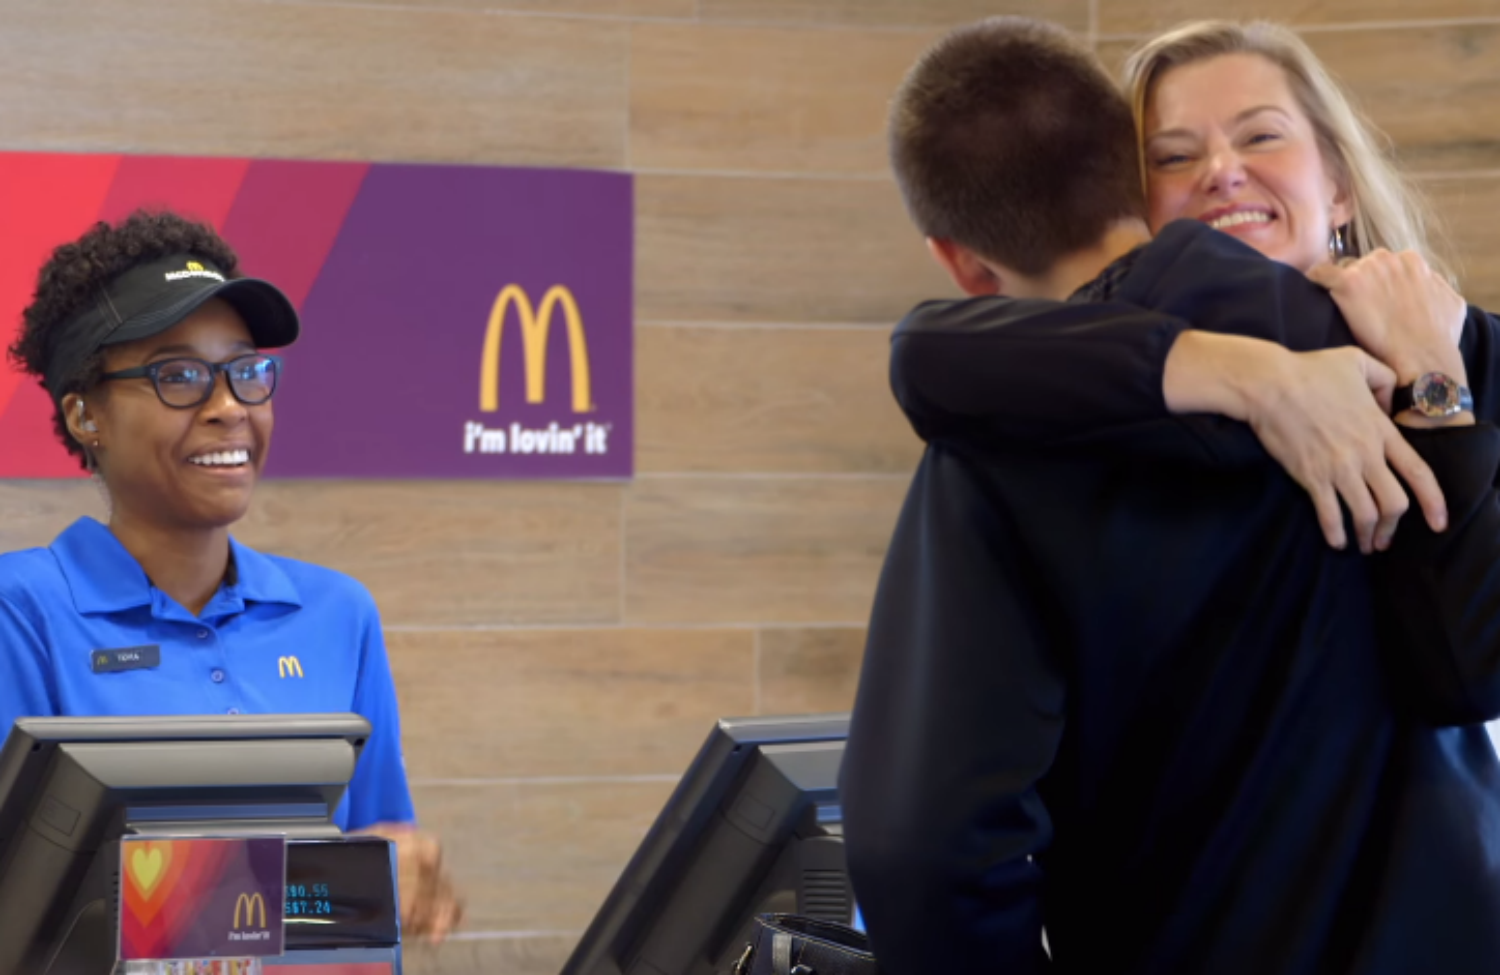 McDonalds-Pay-With-Lovin-commercial